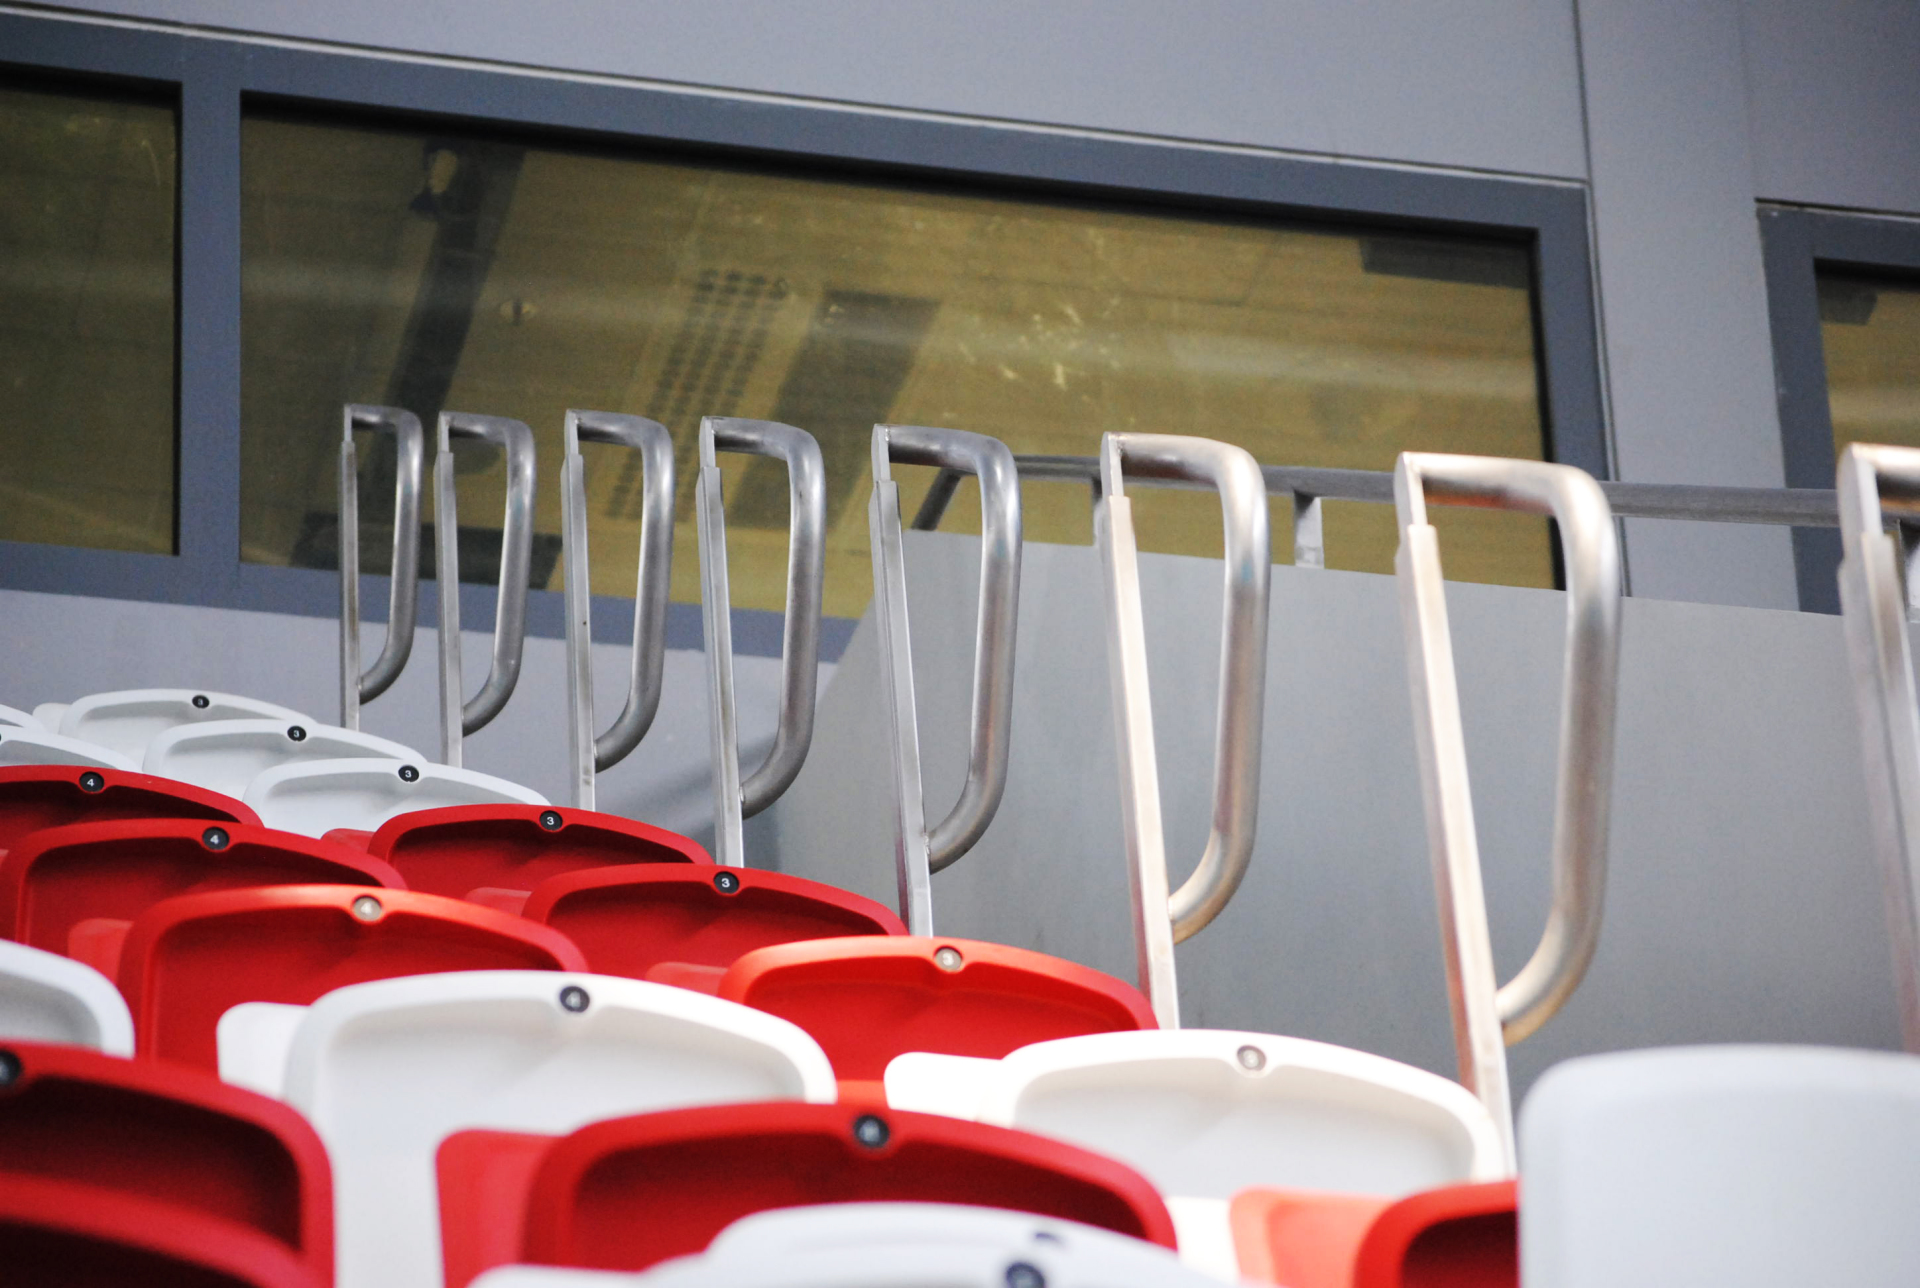 SEATING AREA RAILINGS @ SINGAPORE SPORTS HUB